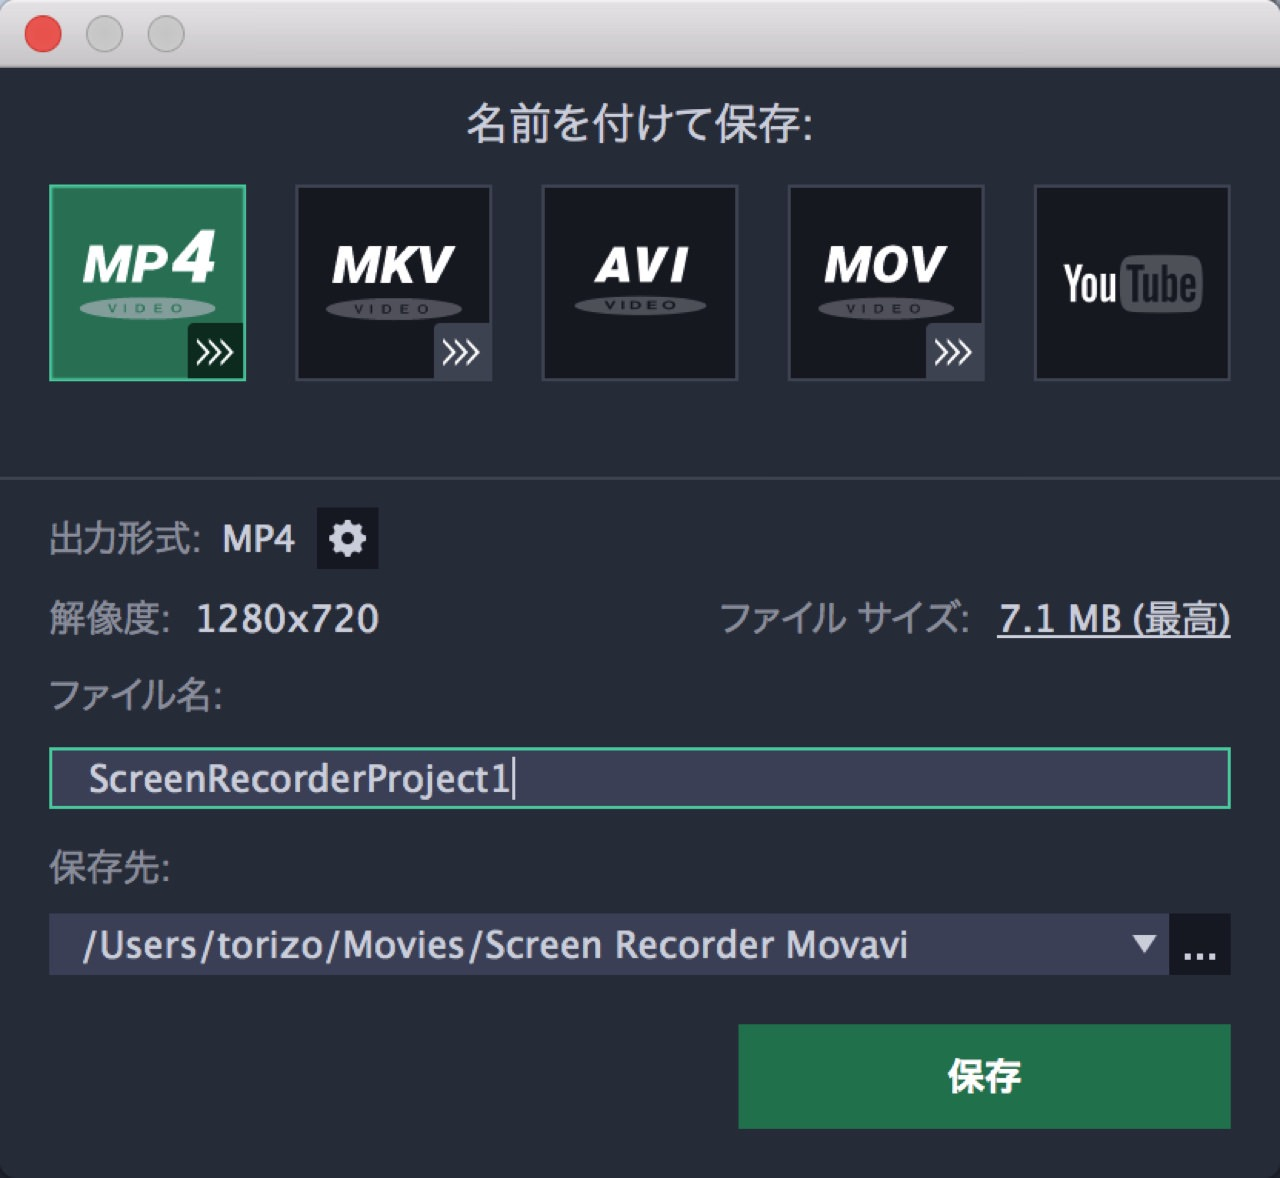 Screen recorder movavi5